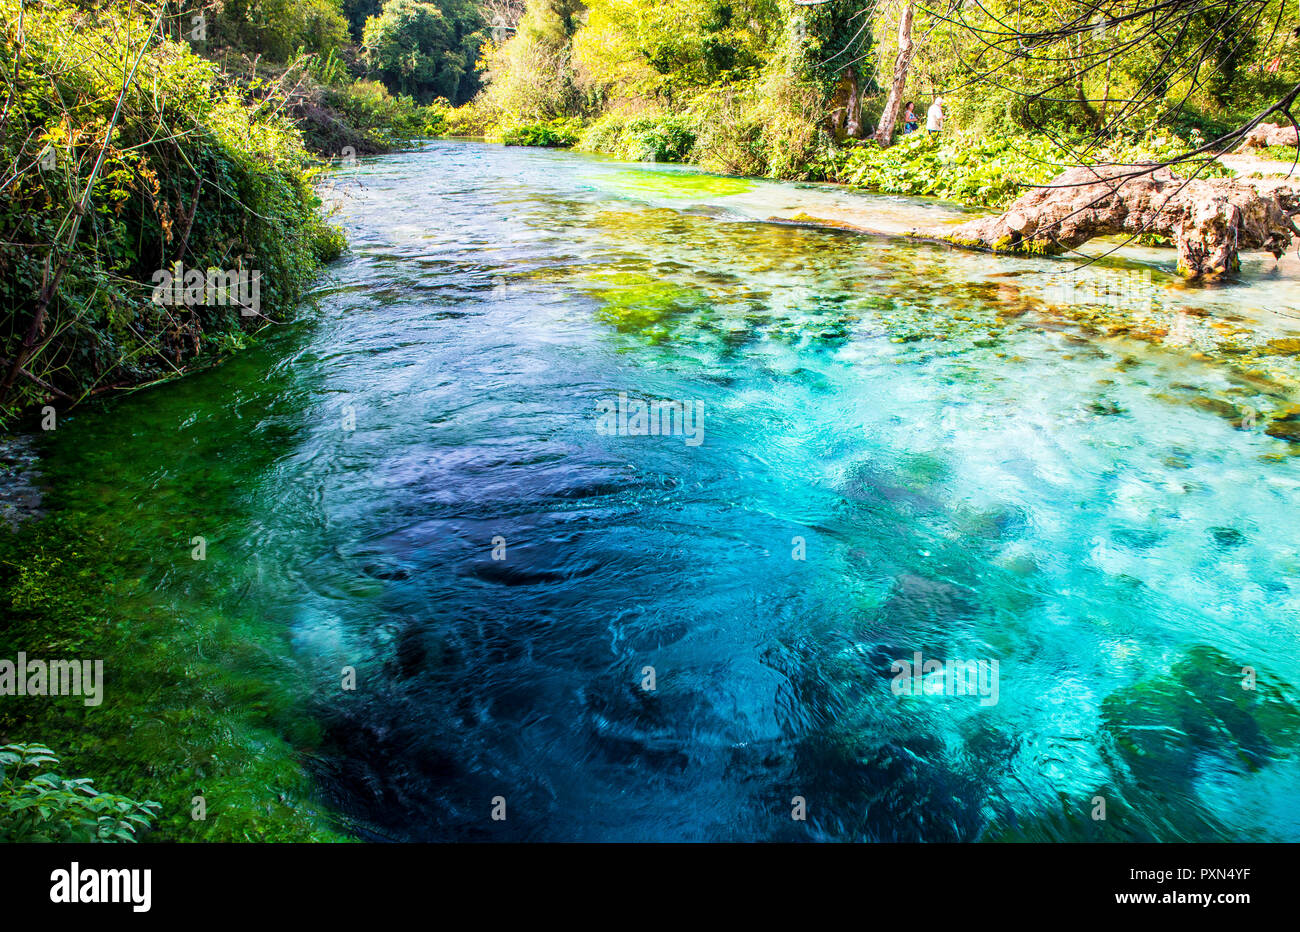 Albanien High Resolution Stock Photography And Images Alamy